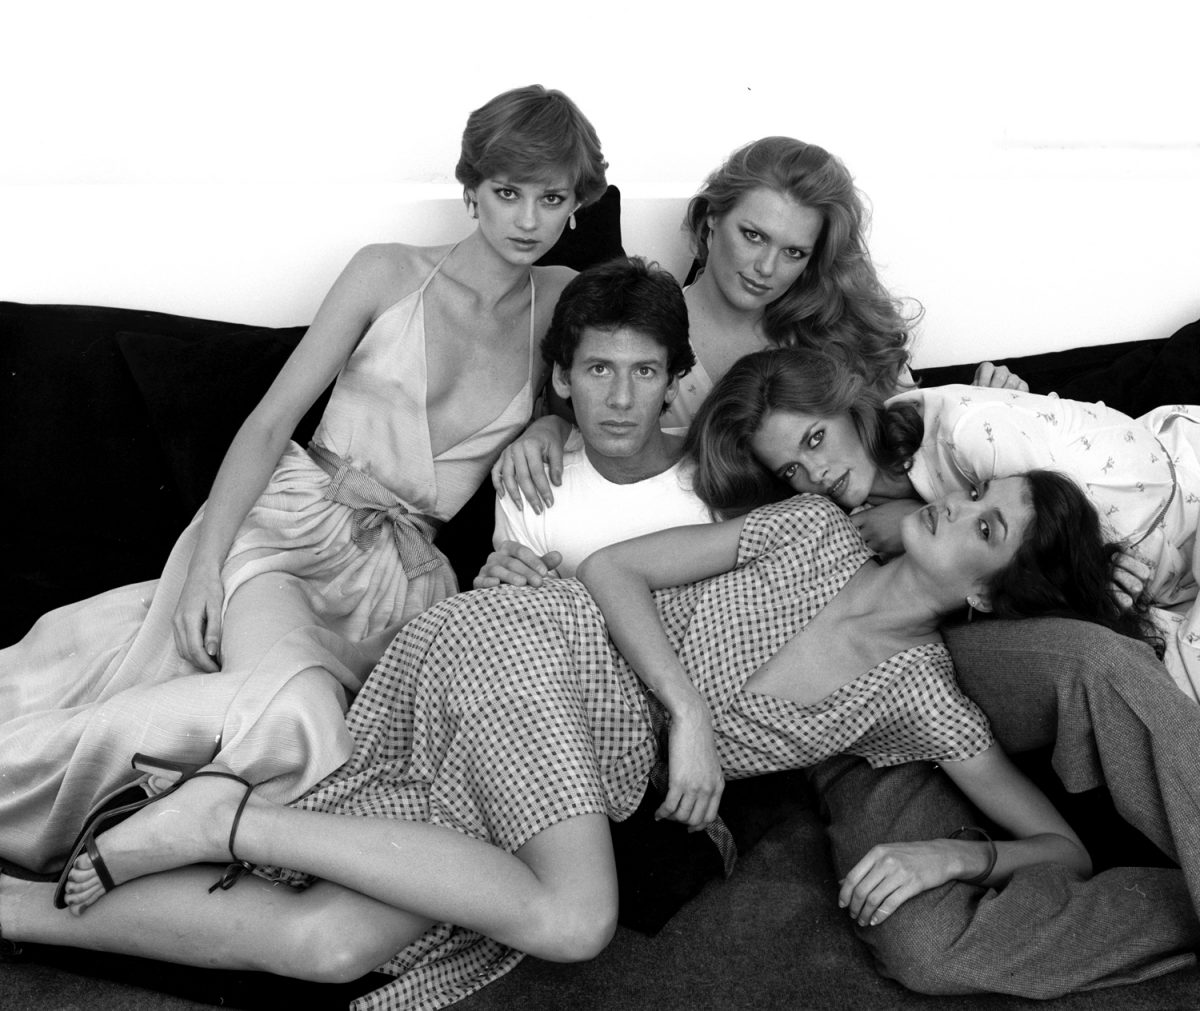 Calvin Klein with Shaun Casey, Patti Hansen, Lisa Taylor and Janice Dickinson, New York, 1978 harry benson